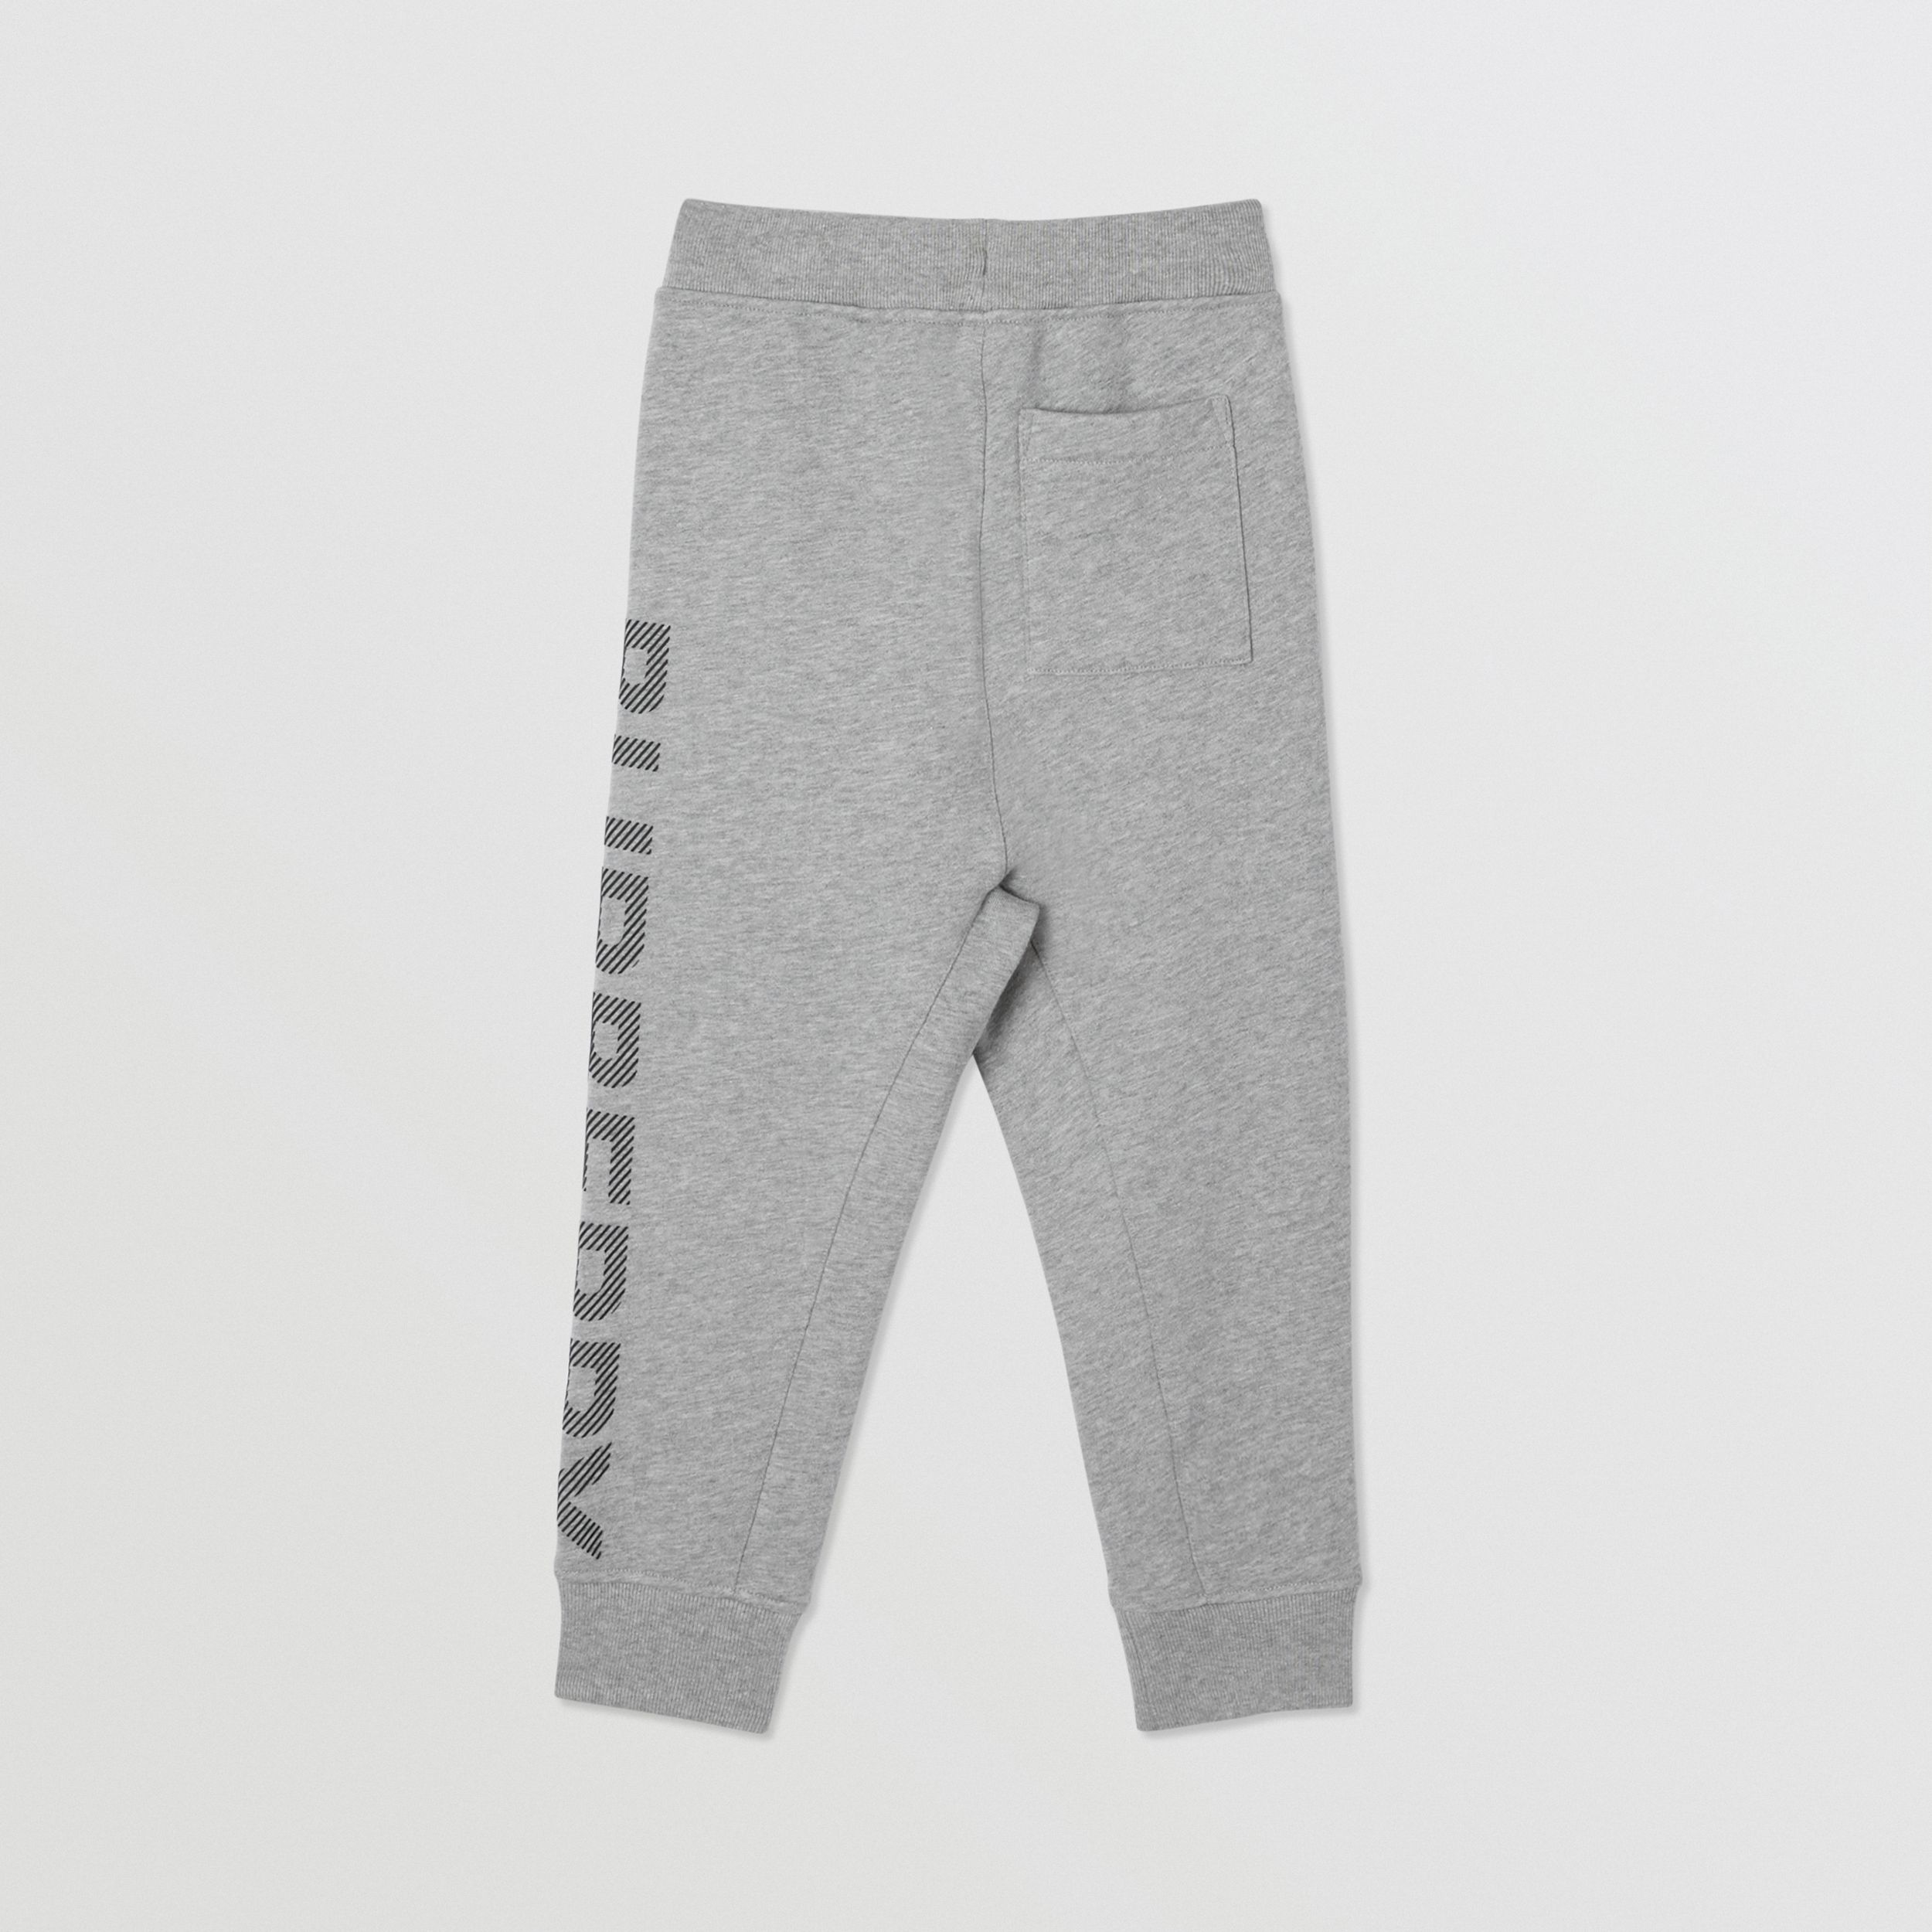 Logo Print Cotton Drawcord Jogging Pants in Grey Melange/black | Burberry - 4